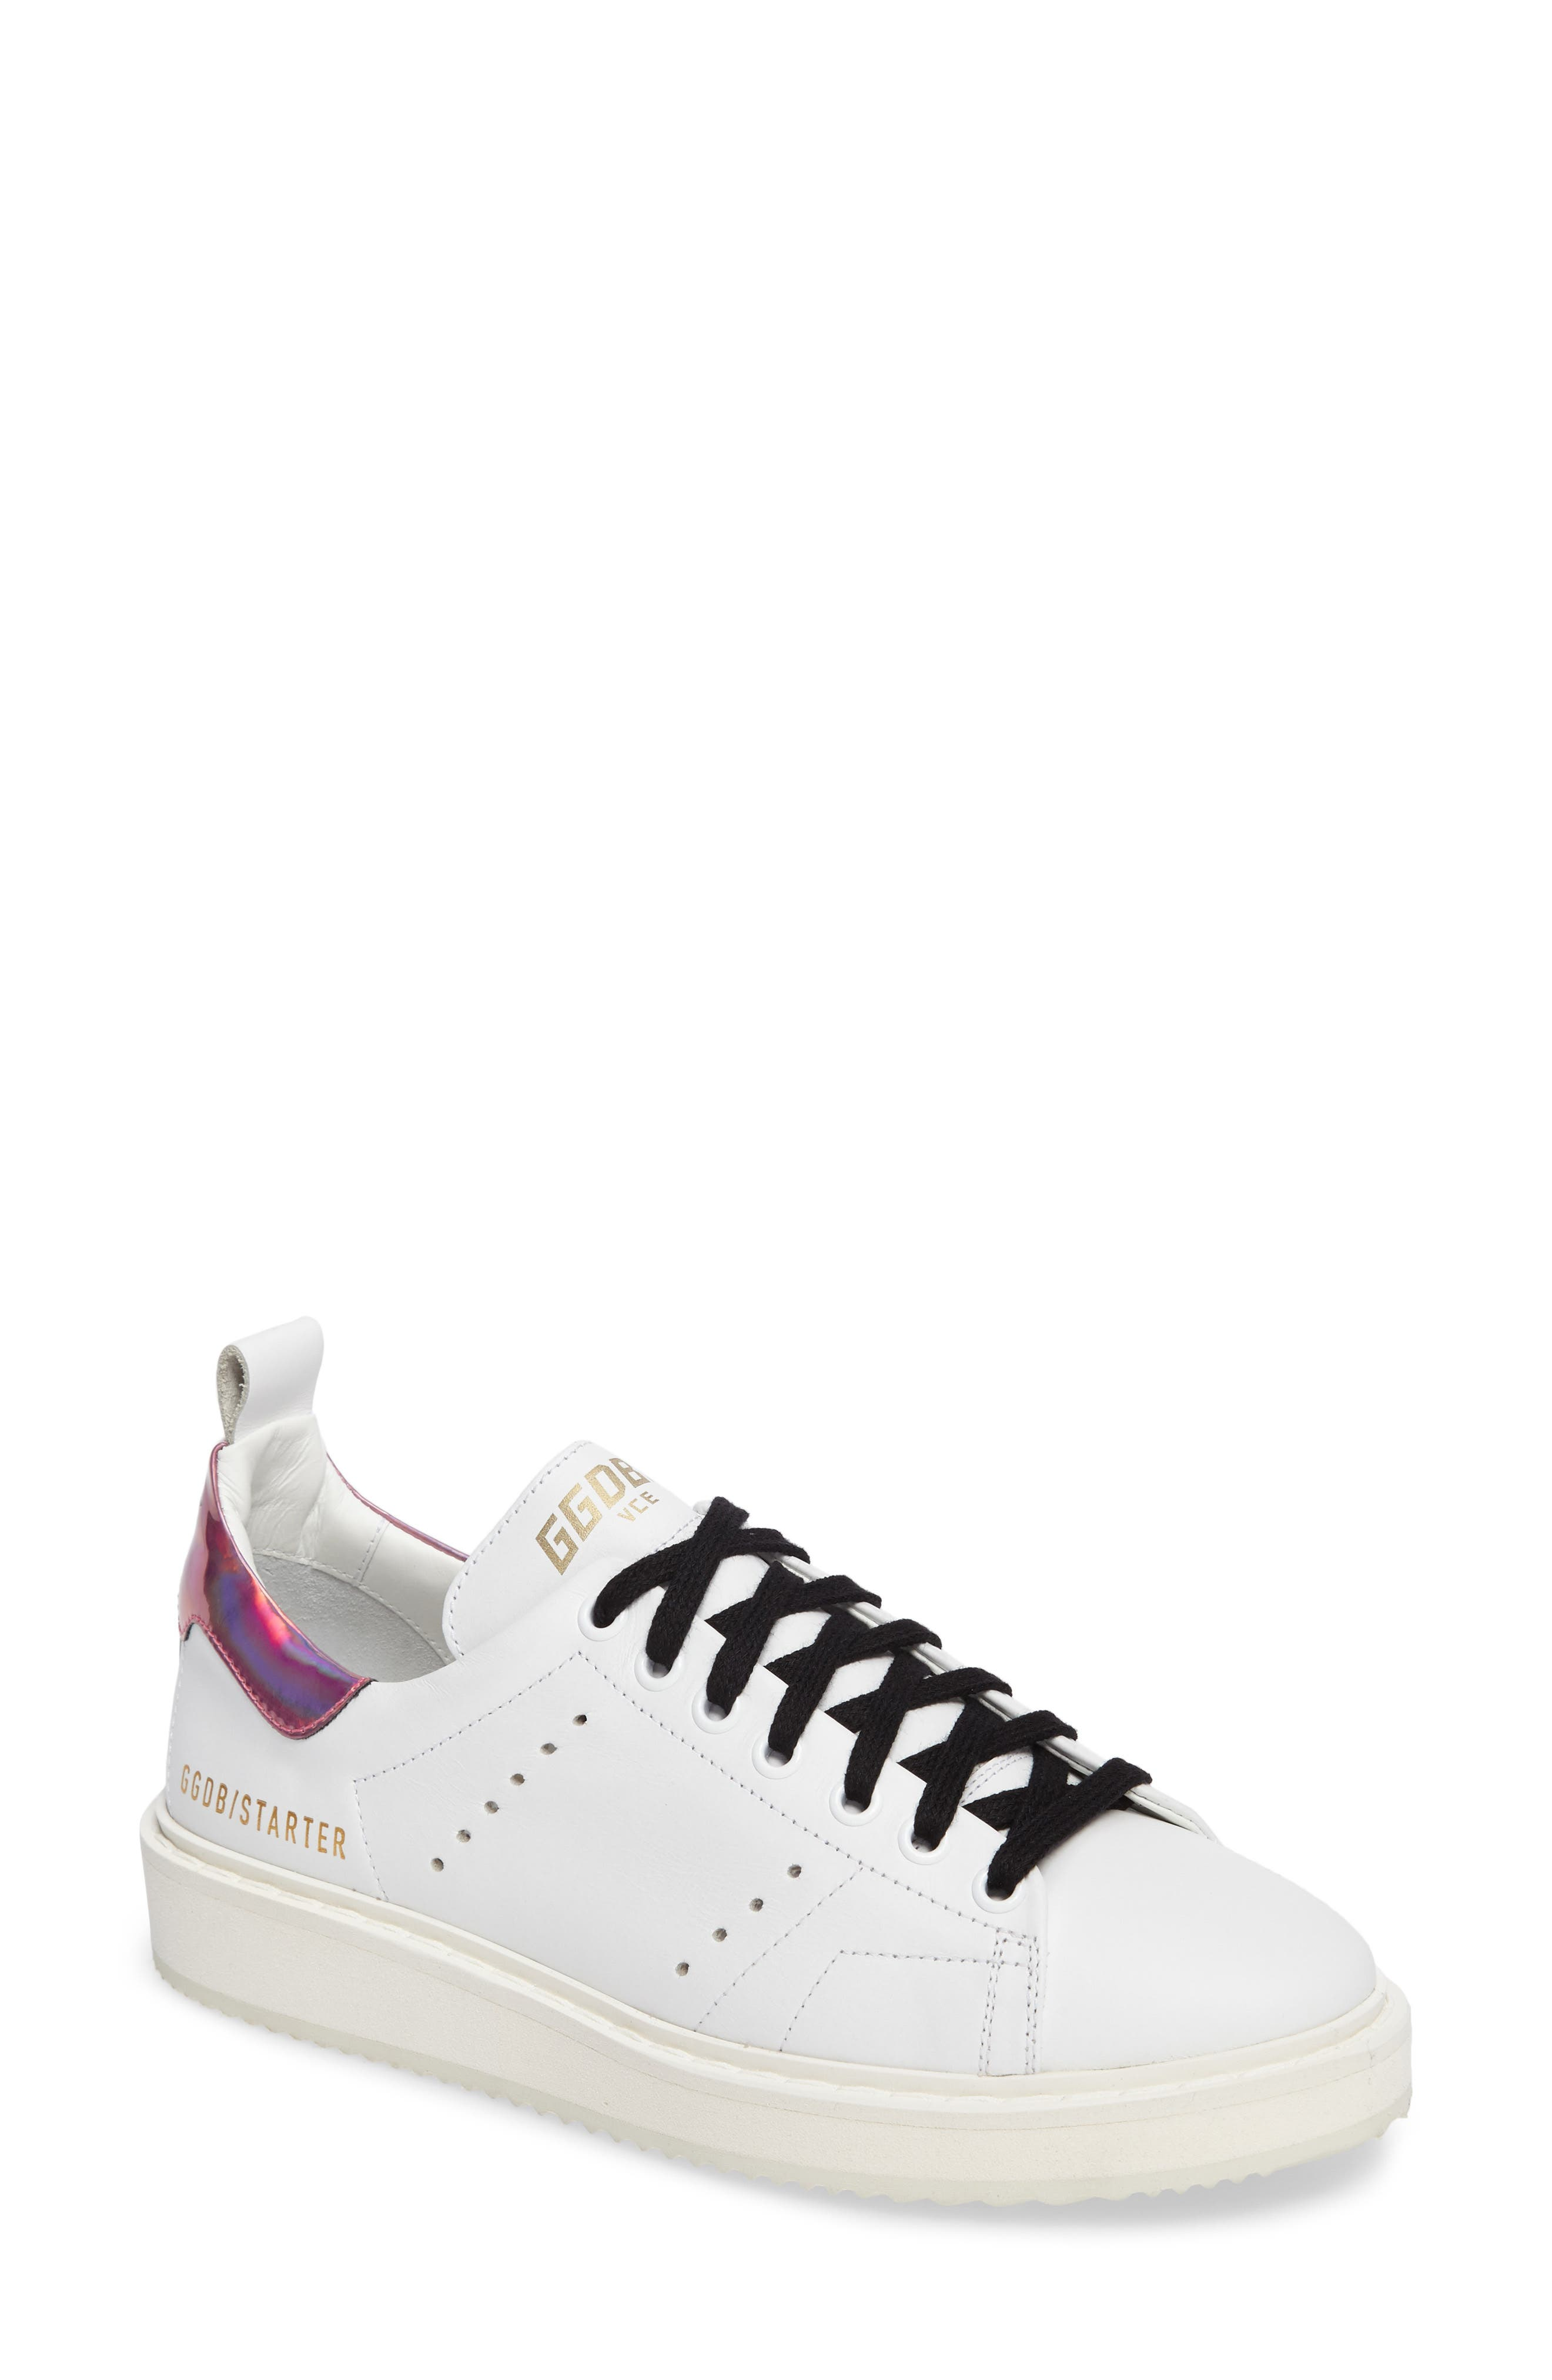 Starter Low Top Sneaker,                             Main thumbnail 1, color,                             White/ Pink Jelly